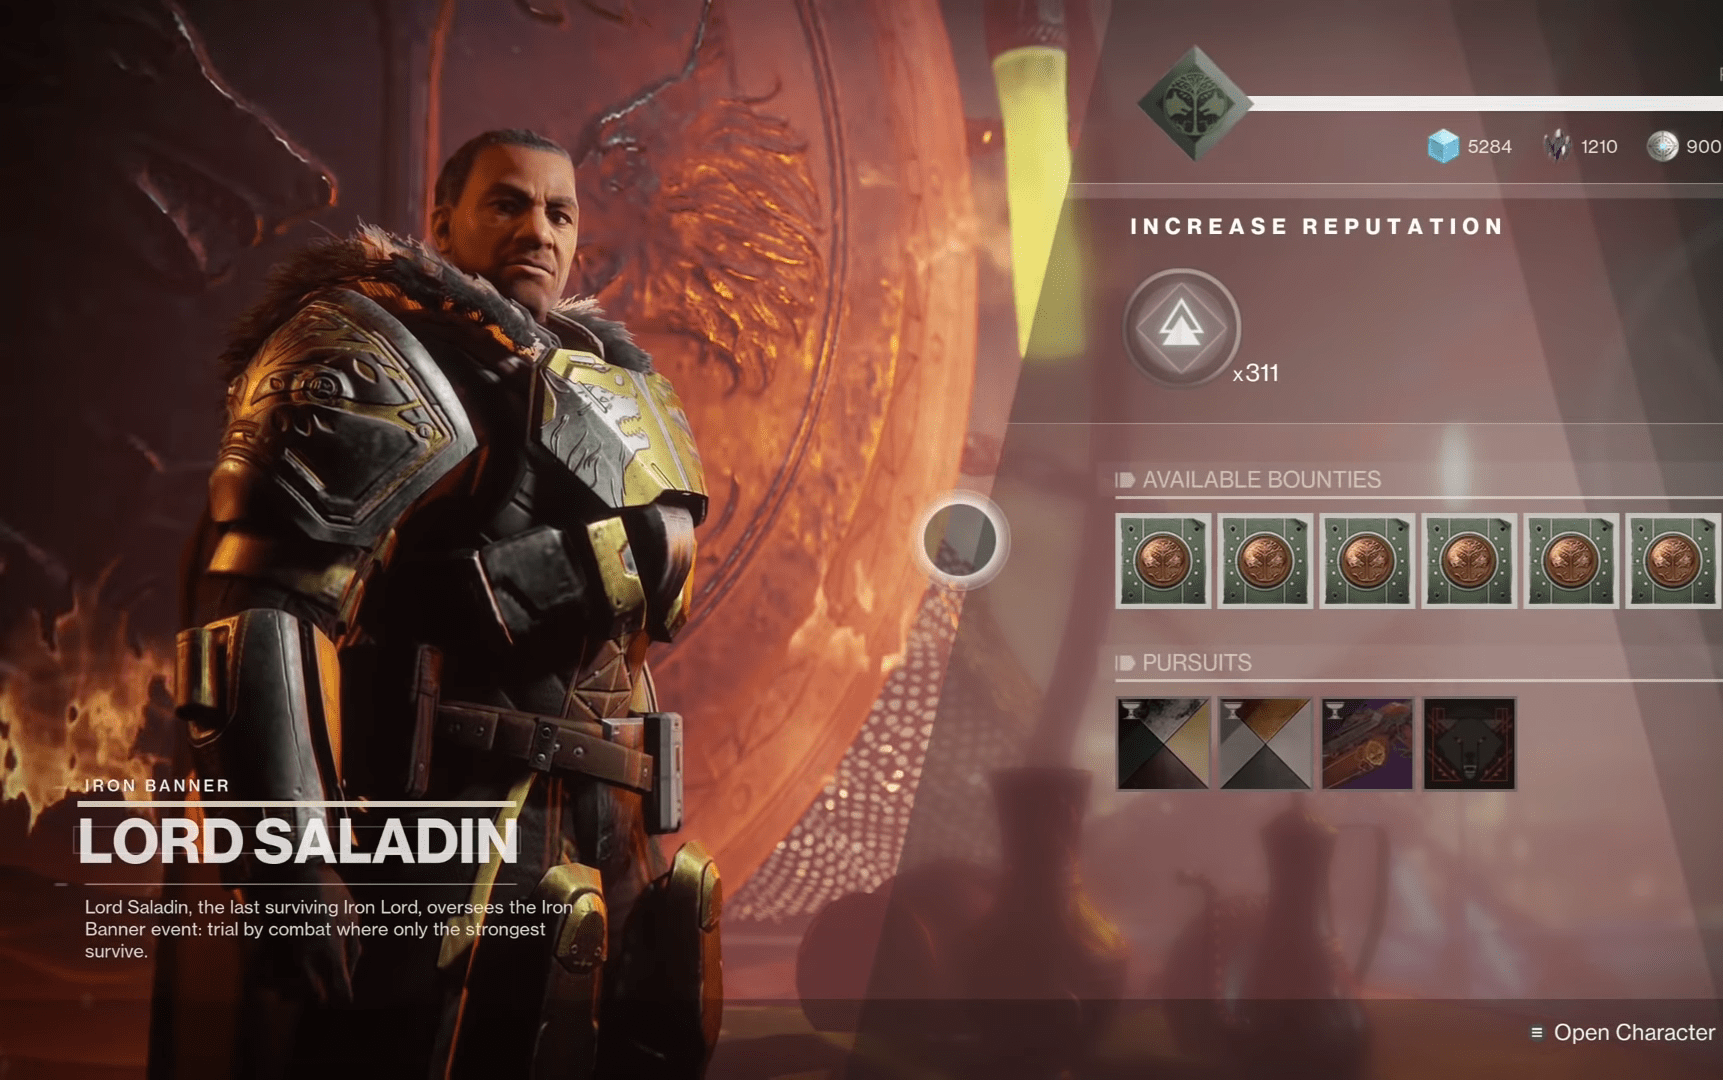 Destiny 2 July 23rd Weekly Reset Content Welcomes Back Iron Banner Crucible Playlist